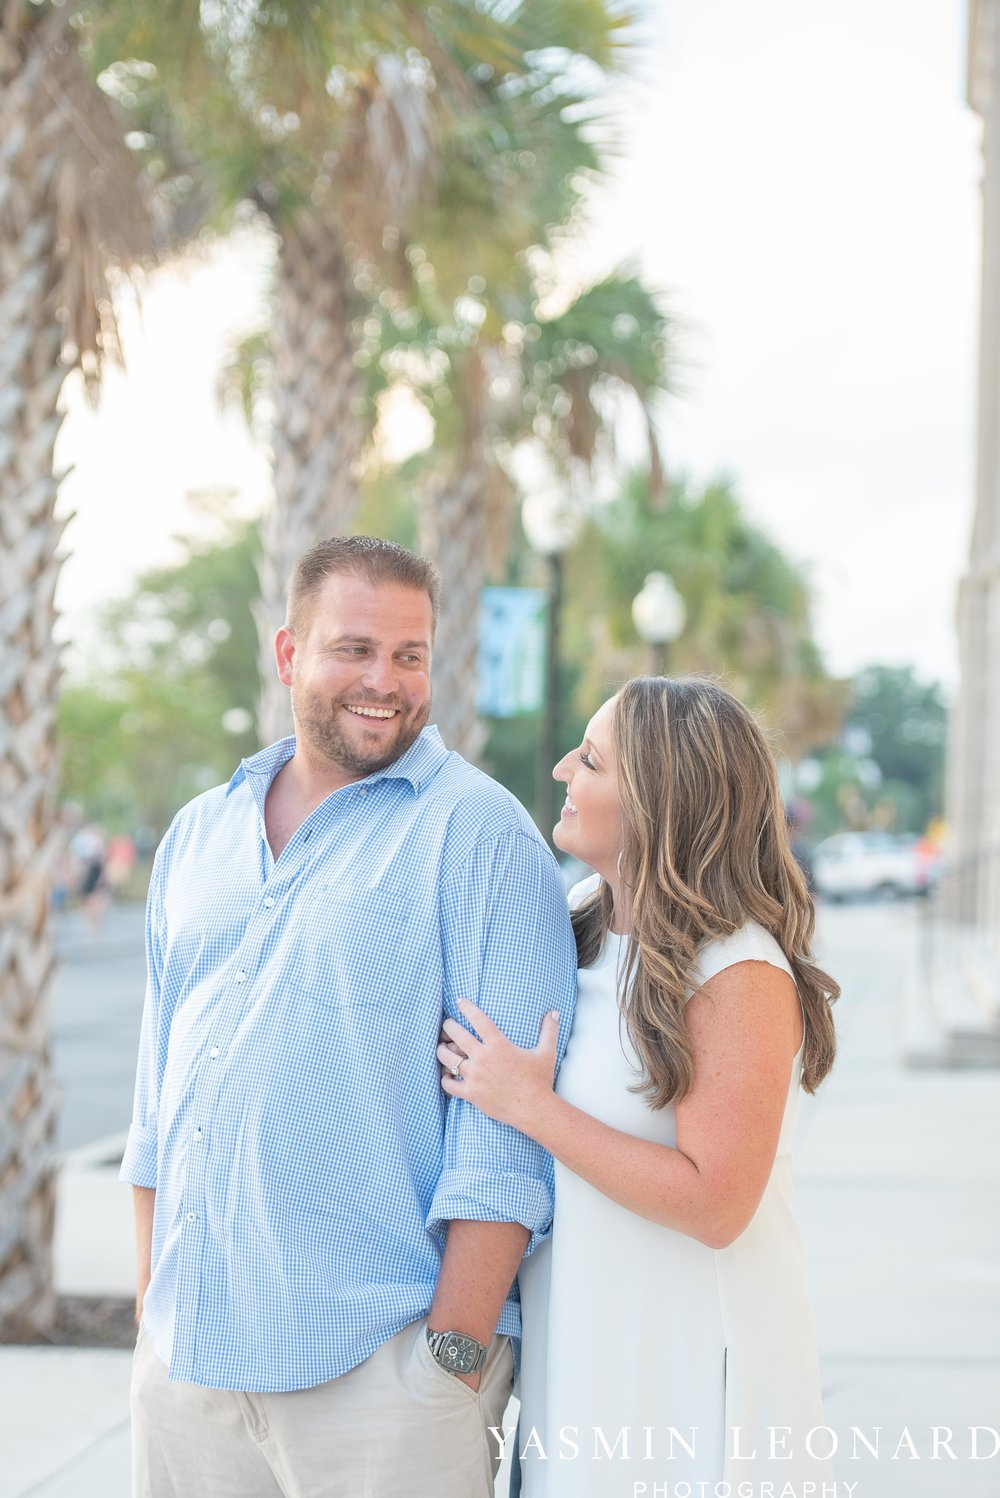 Wrightsville Beach Engagement Session - Wilmington Engagement Session - Downtown Wilmington Engagement Session - NC Weddings - Wilmington NC - Yasmin Leonard Photography-8.jpg